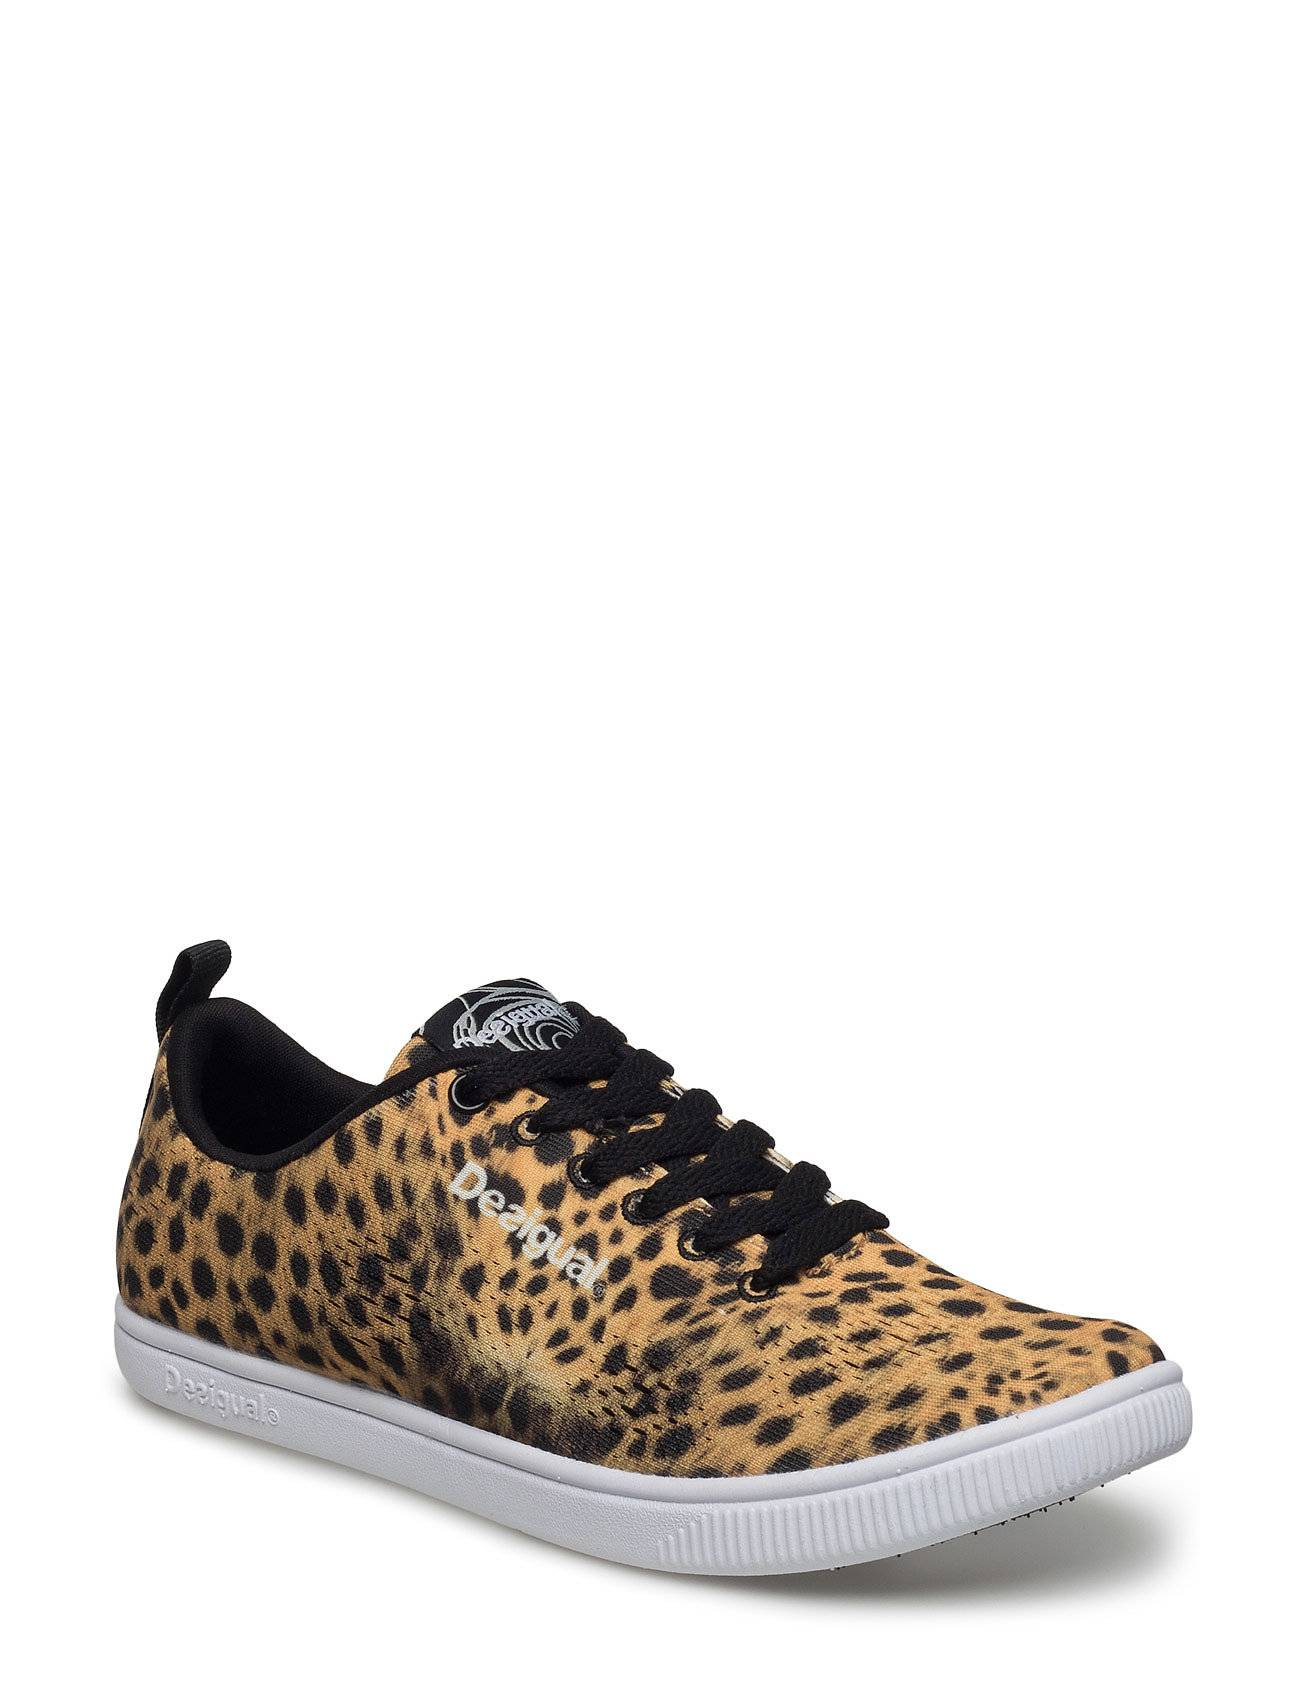 Desigual Sport Shoes Candem W